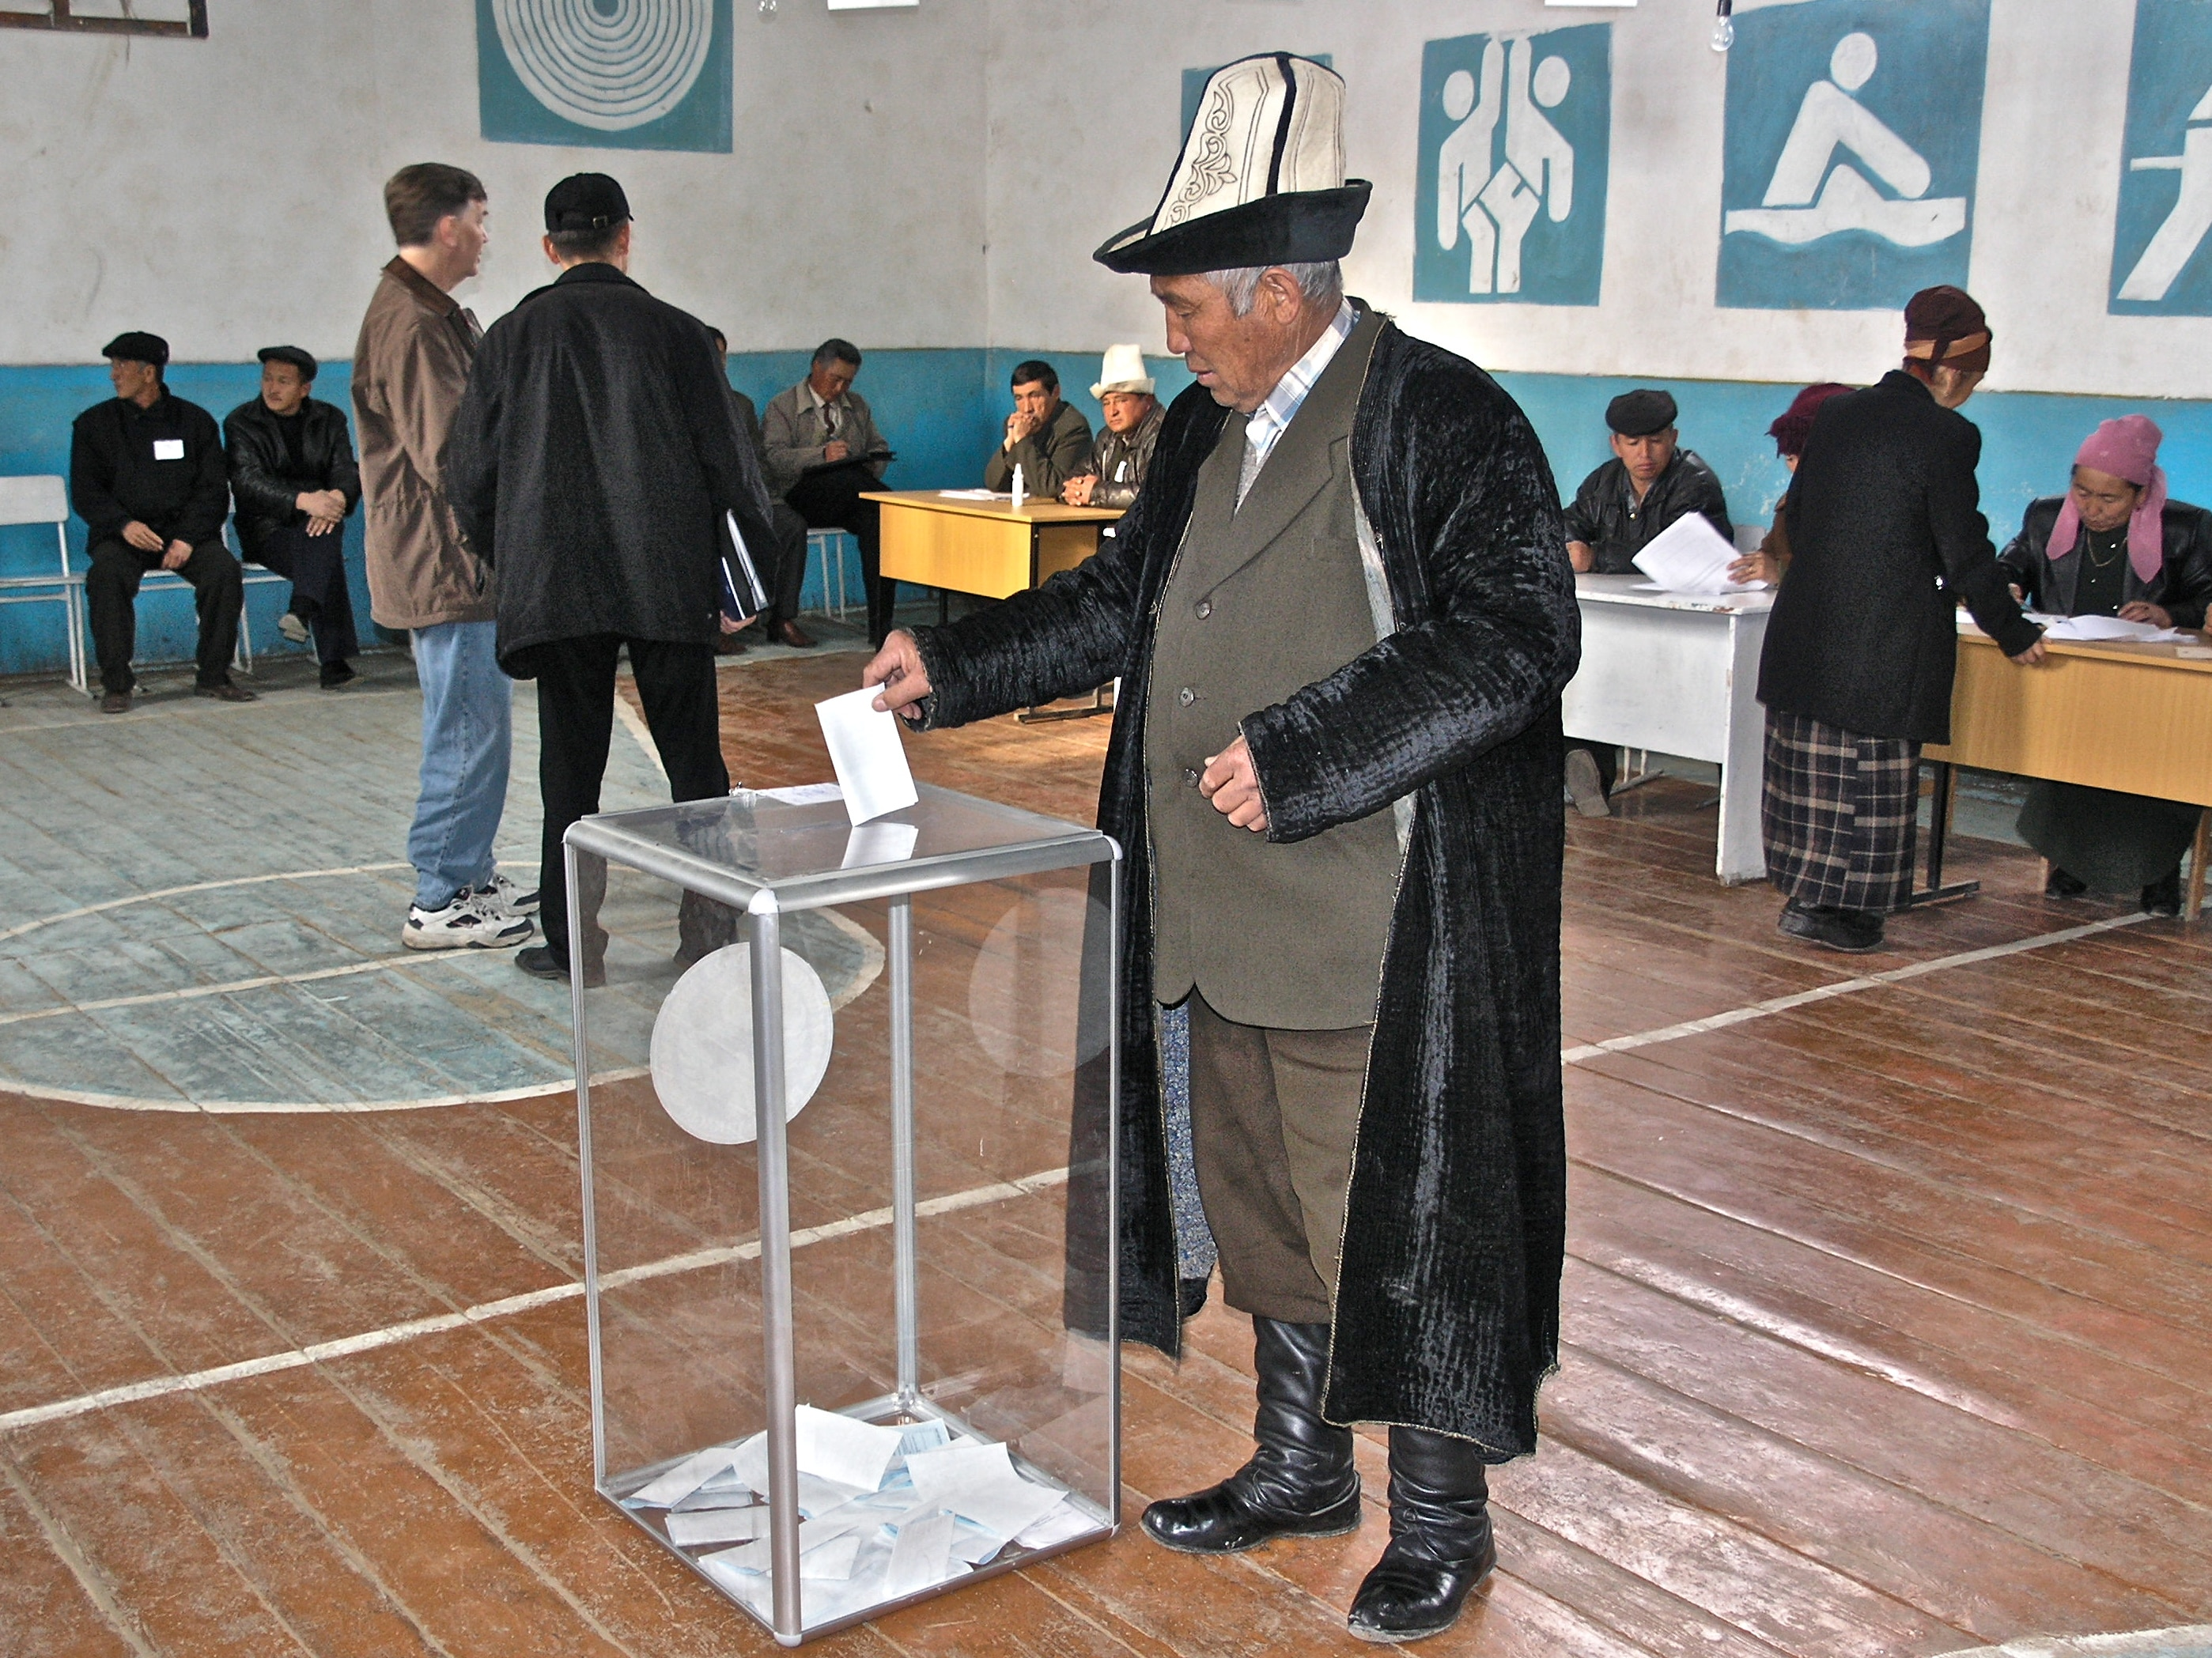 Local election observers and polling station workers look on as a man casts his ballot during the 2005 parliamentary elections in Kyrgyzstan.